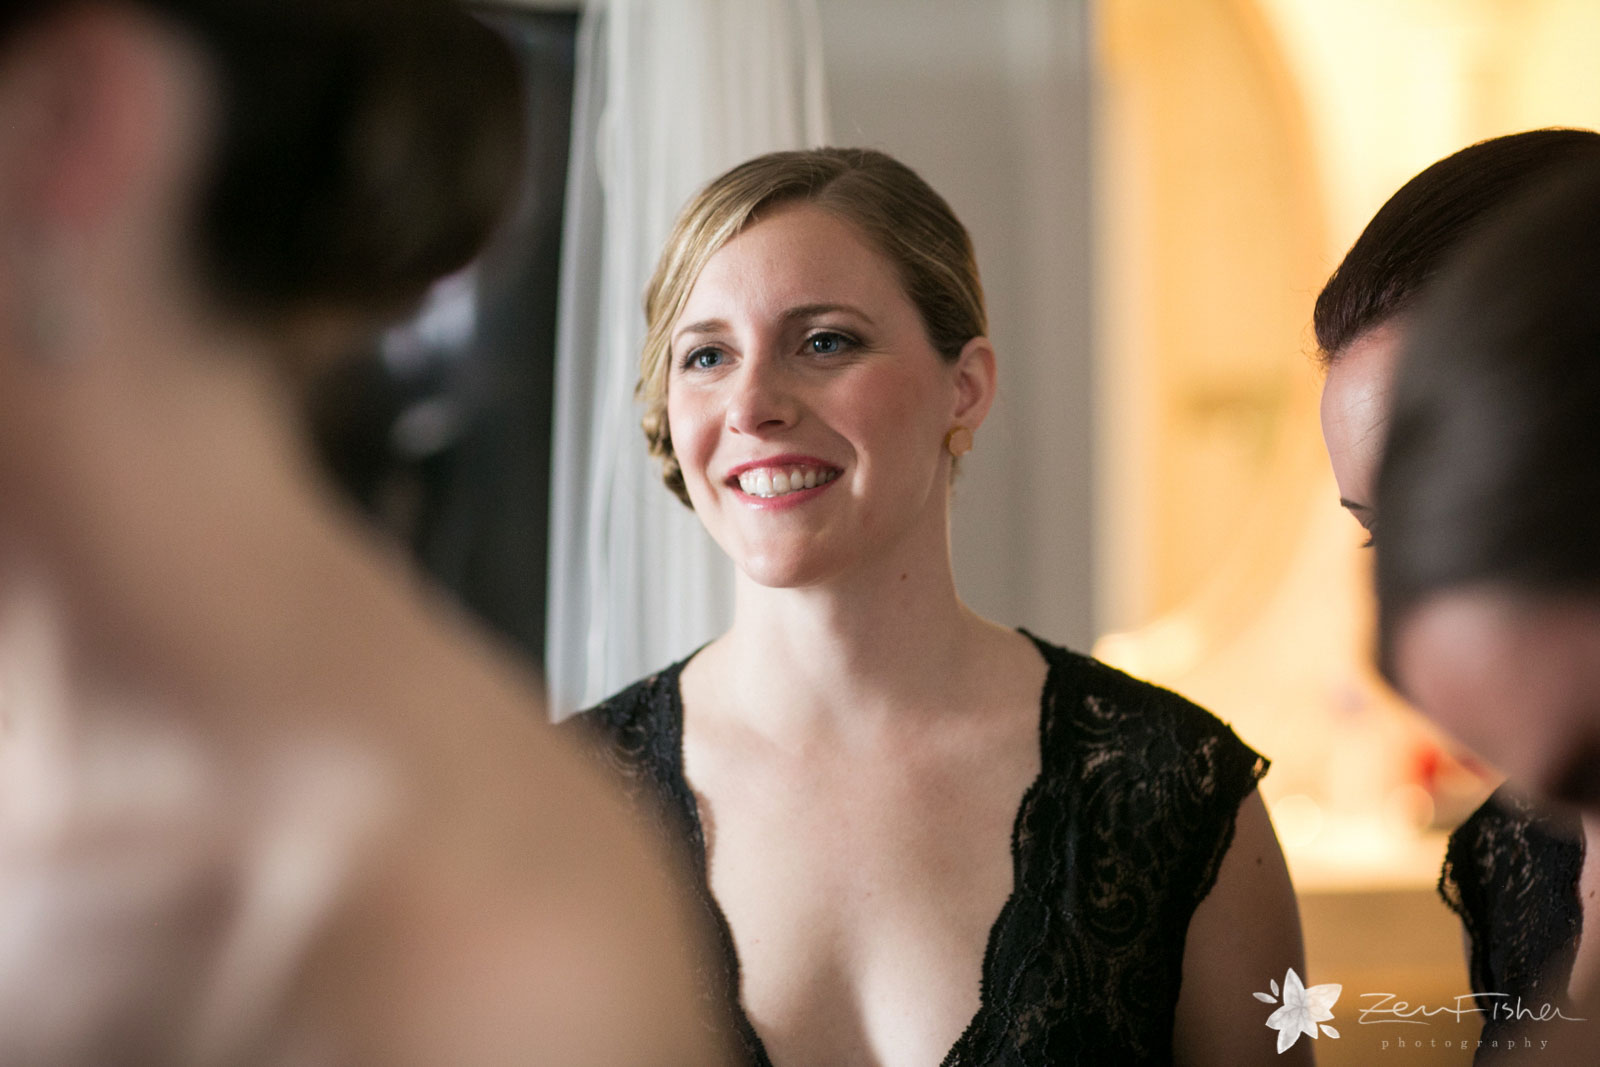 Candid of bridemaid looking at bride and smiling.